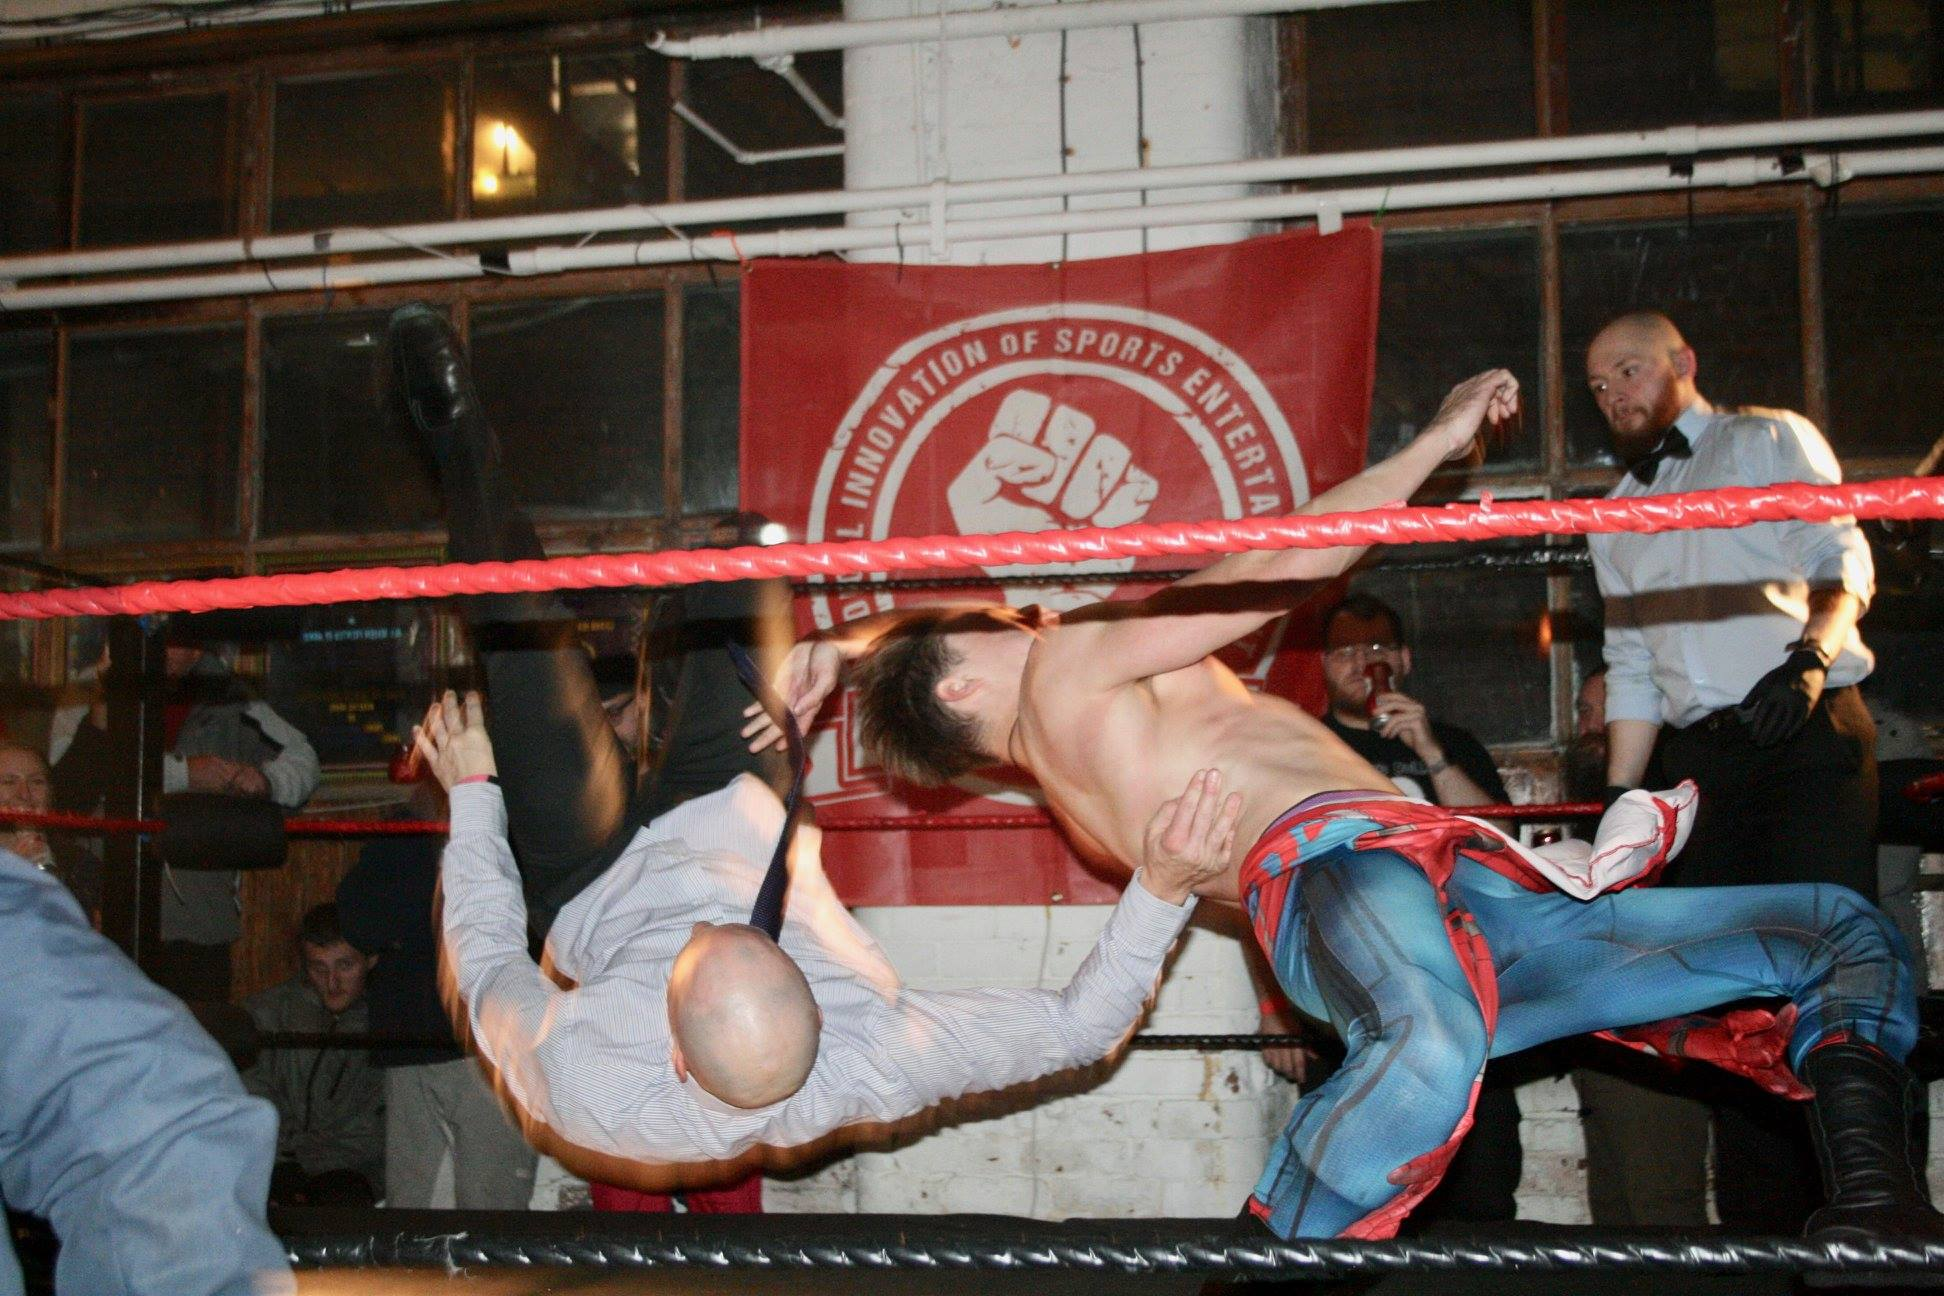 Holy SH*T: A Beginner's Guide to Underground Wrestling